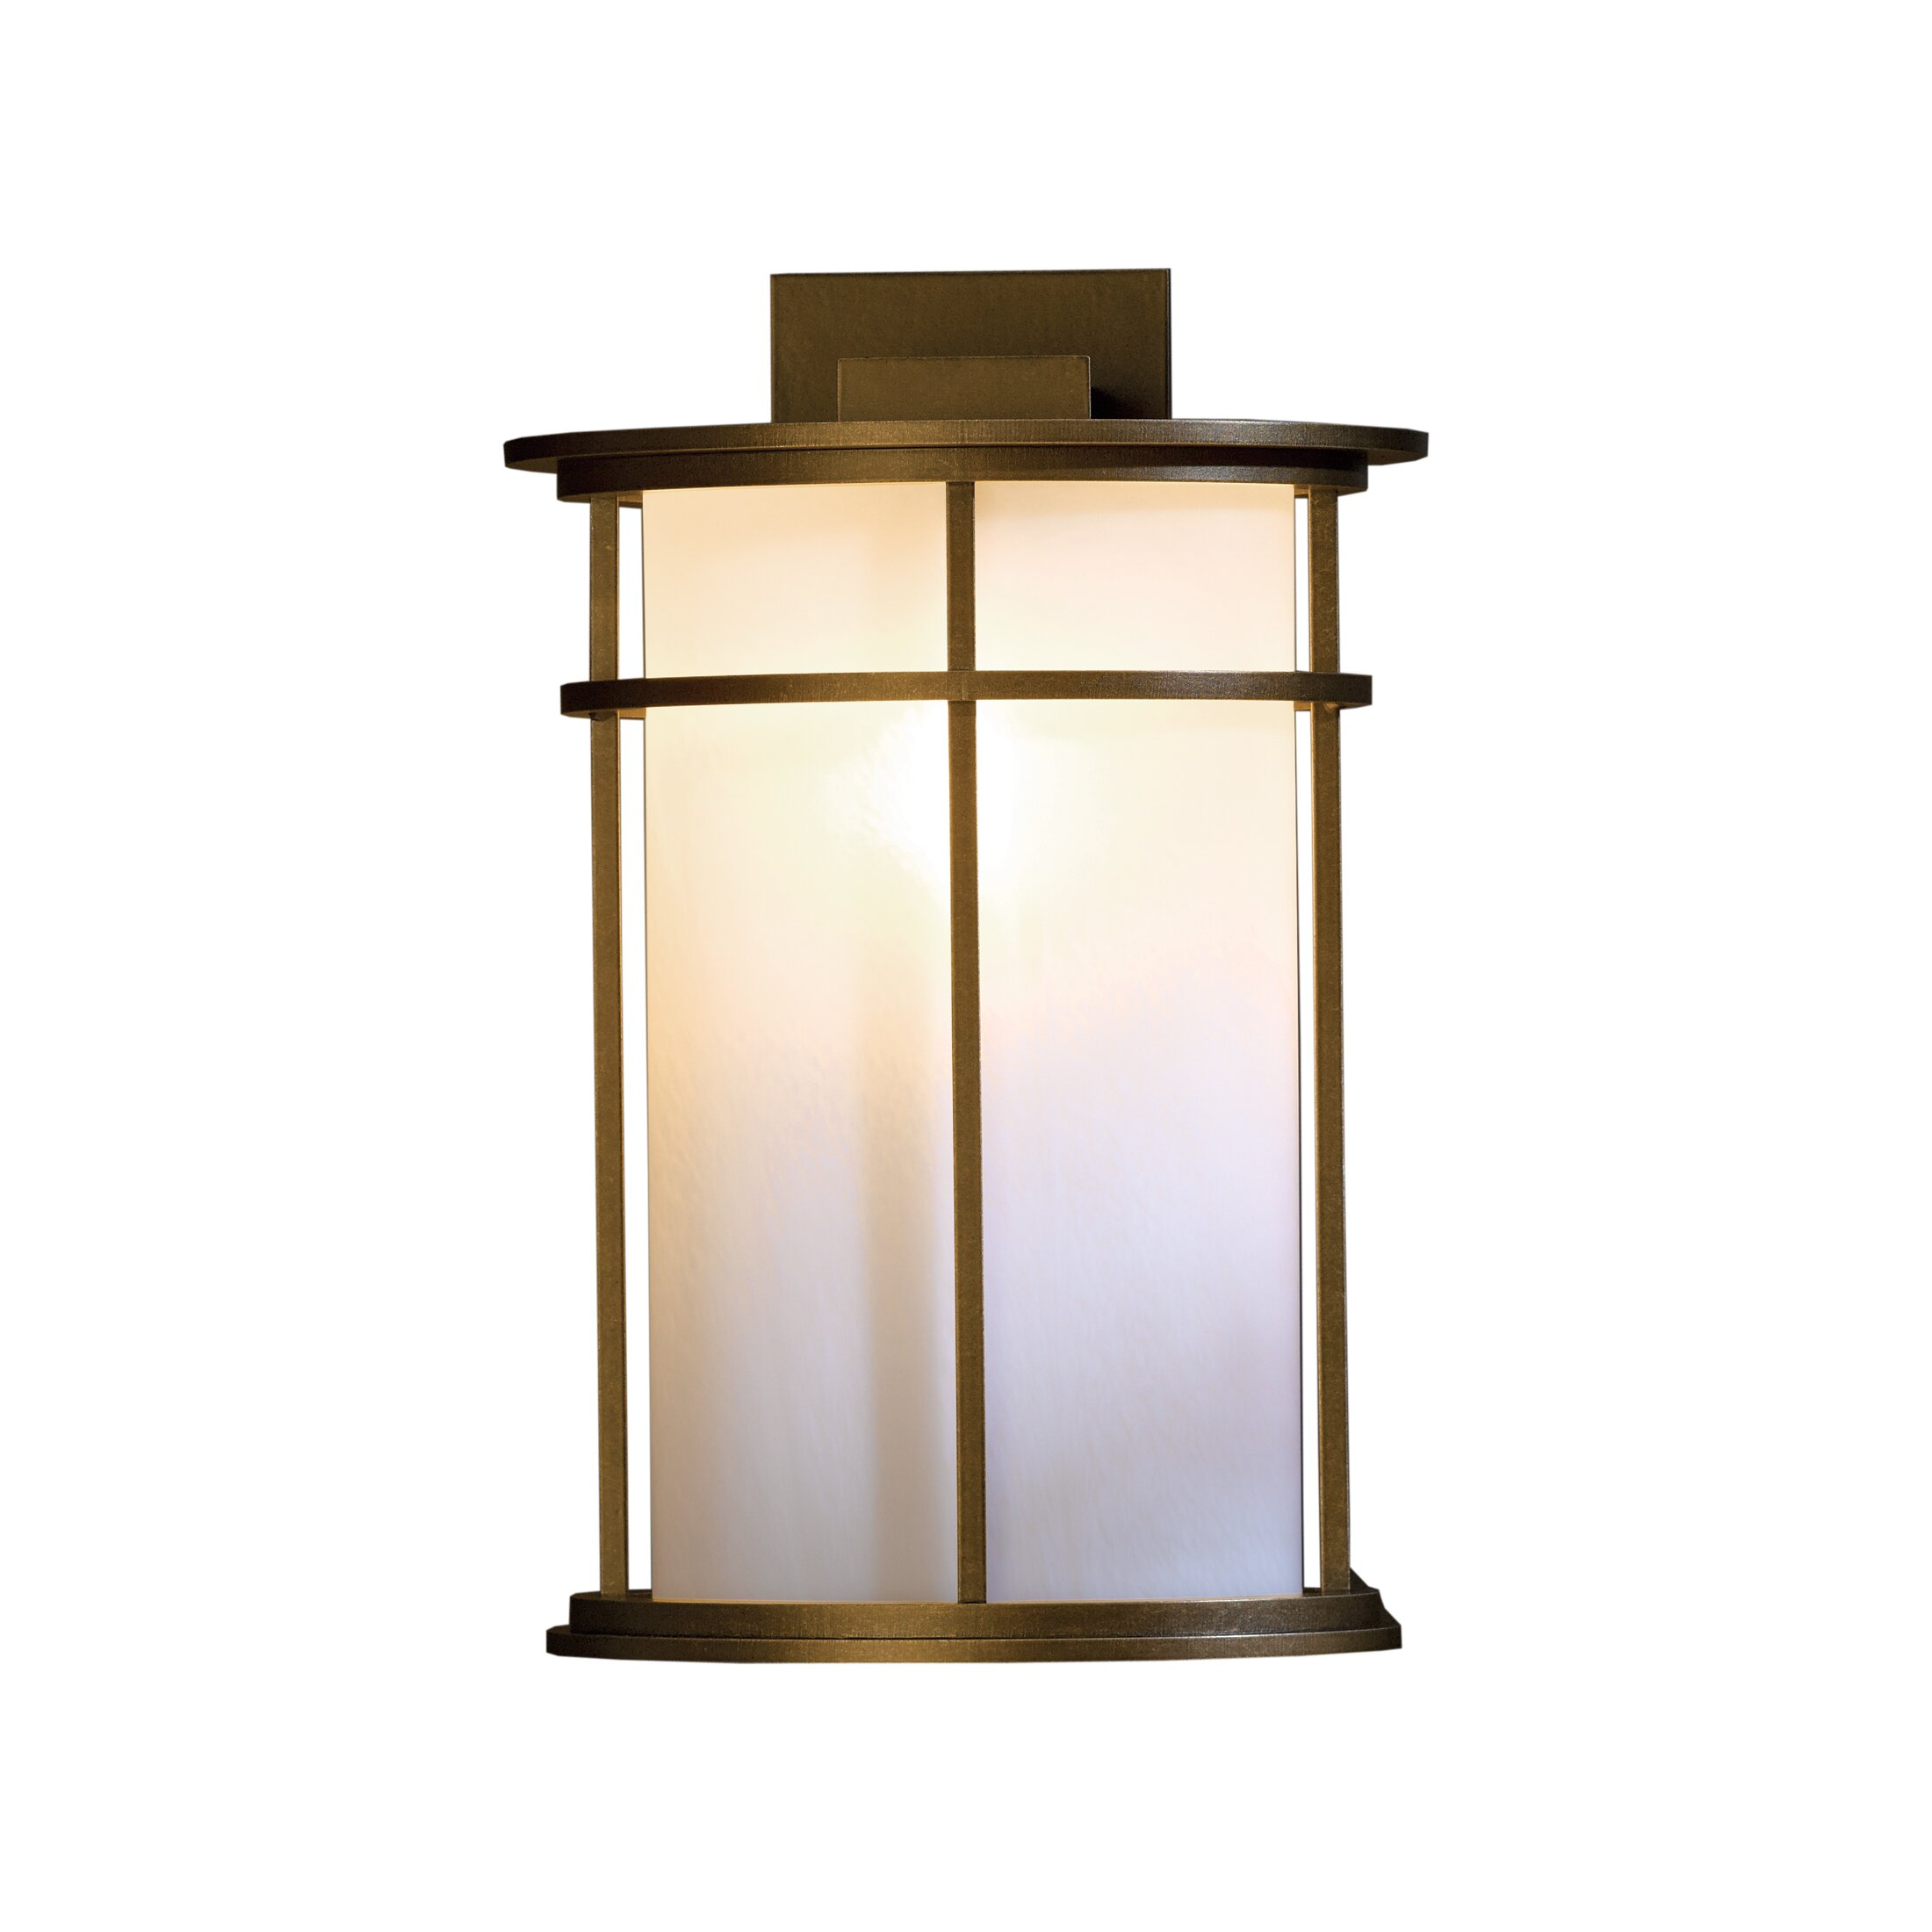 Hubbardton Forge Wall Lights: Hubbardton Forge Province 1 Light Outdoor Sconce & Reviews